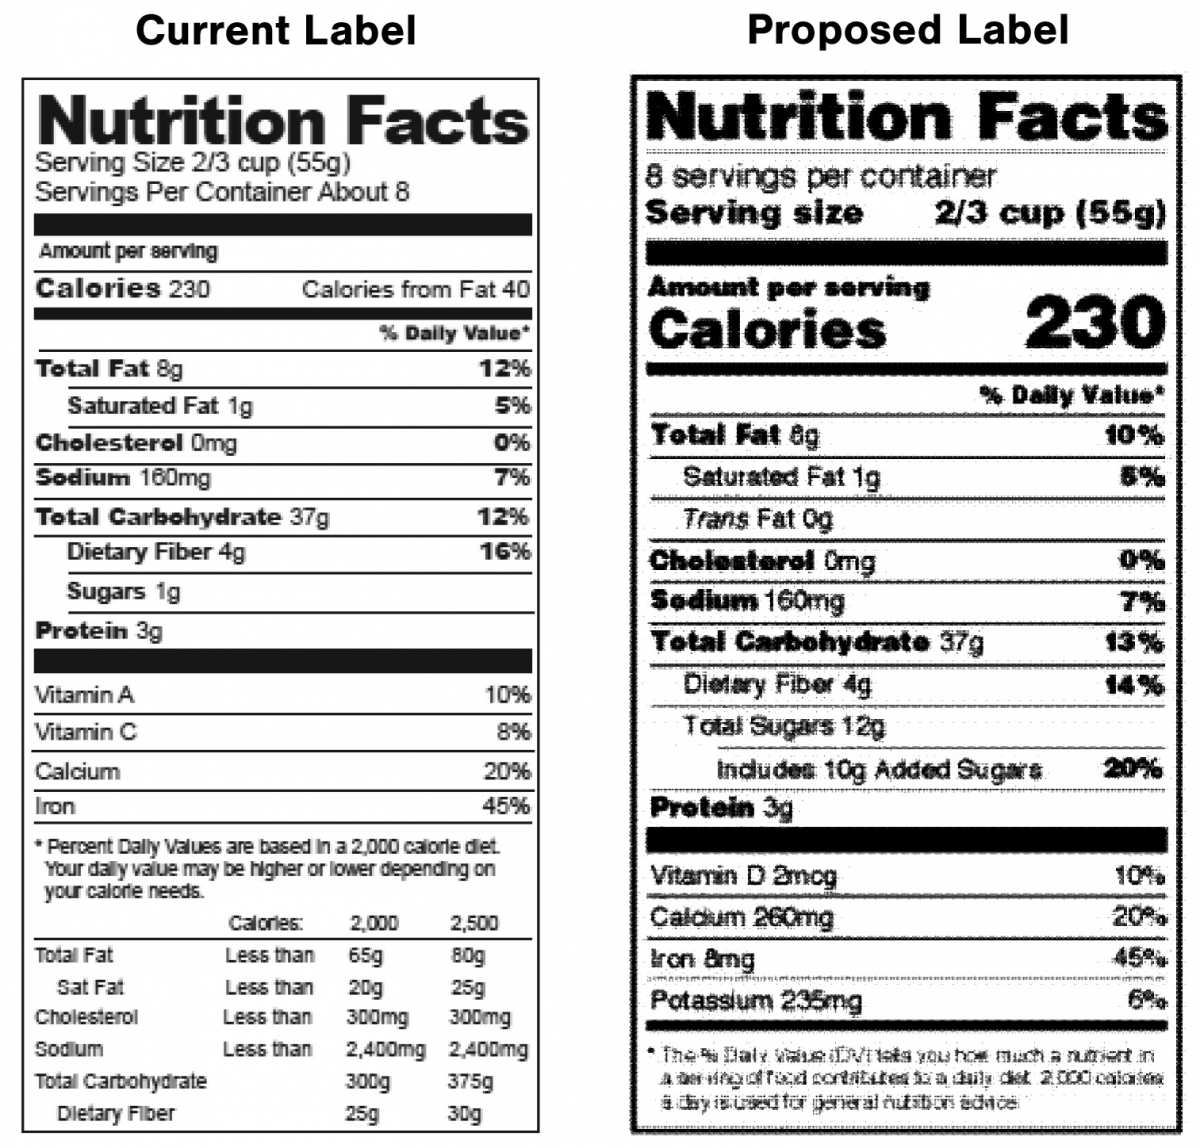 USDA Proposes Overhaul Of Nutrition Facts Panel For Meat